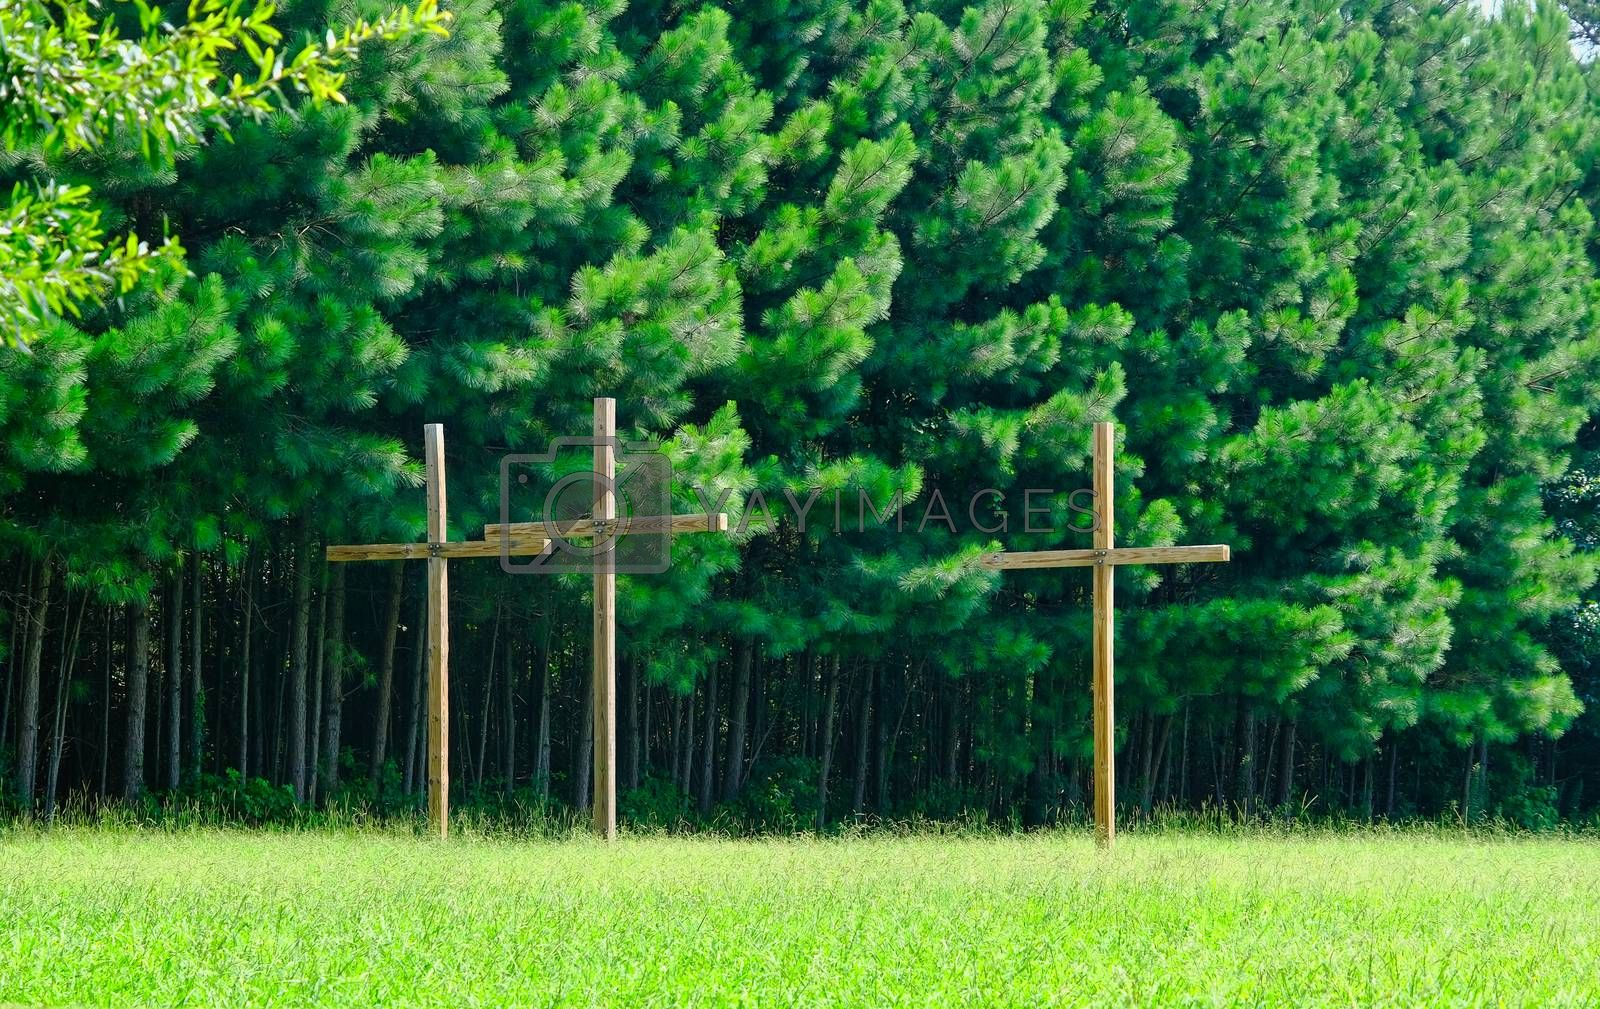 Three Wood Crosses by Green PIne Trees Over Grass Lawn